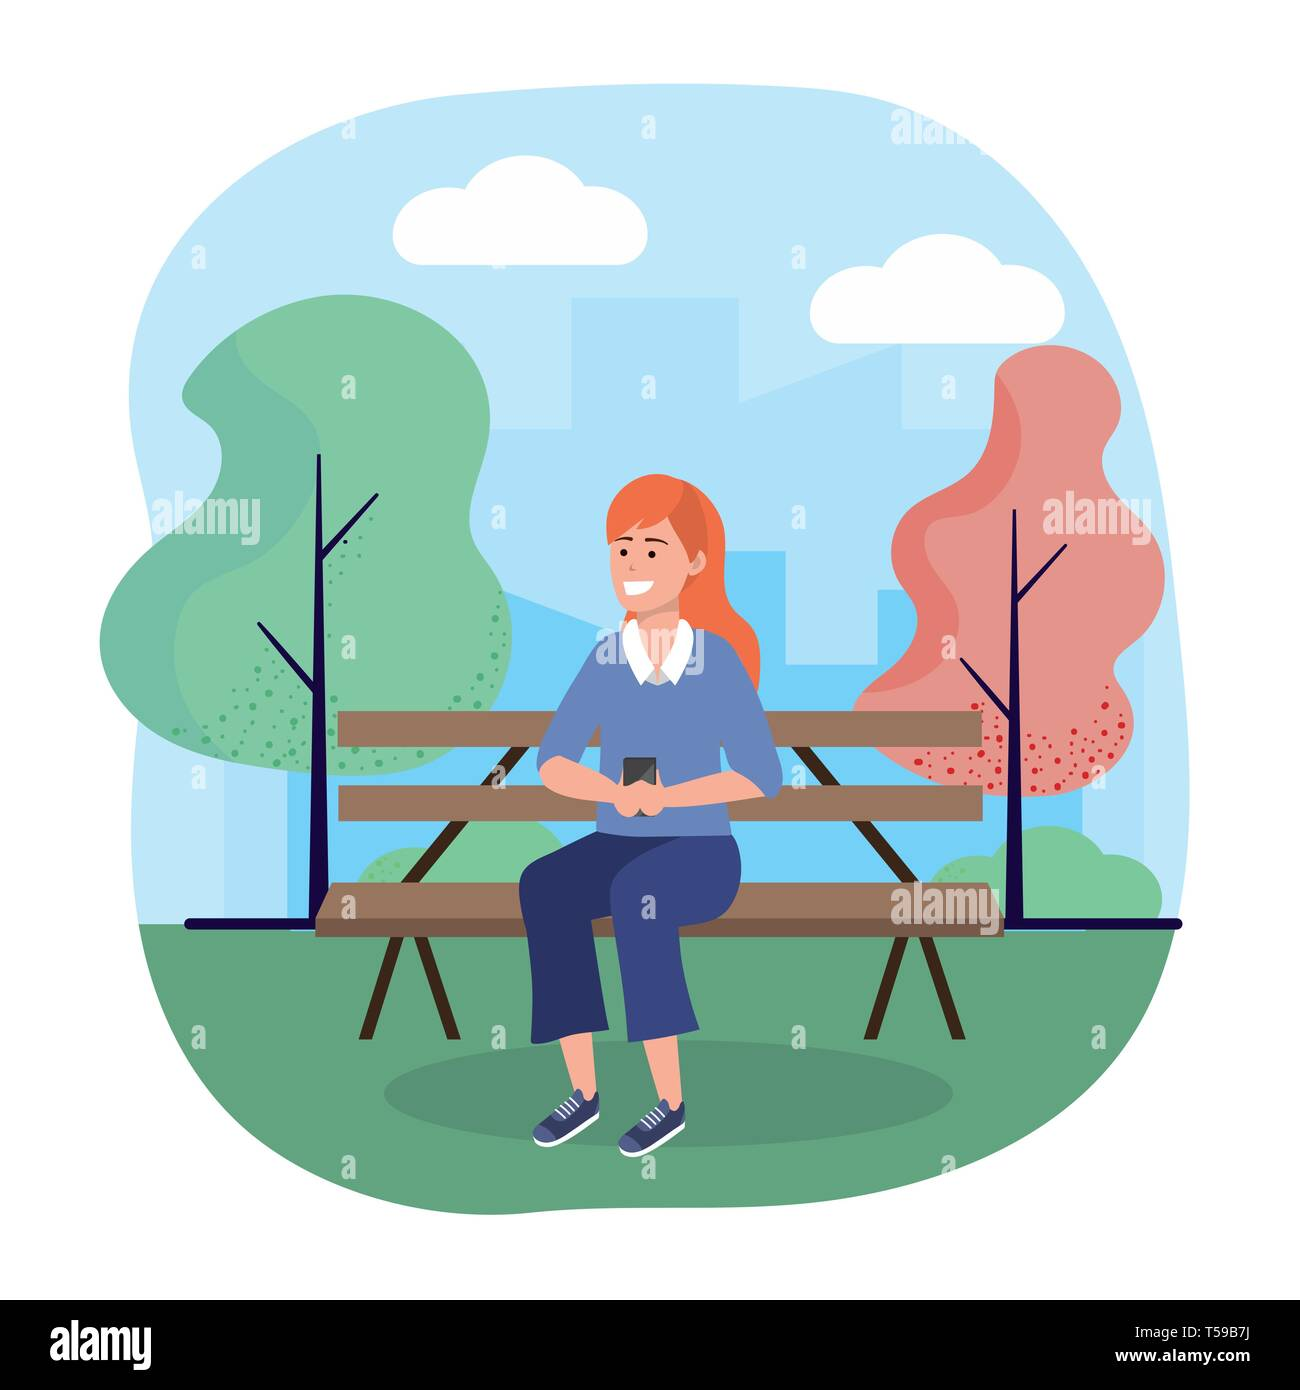 woman seating in the chair with smartphone technology vector illustration Stock Vector